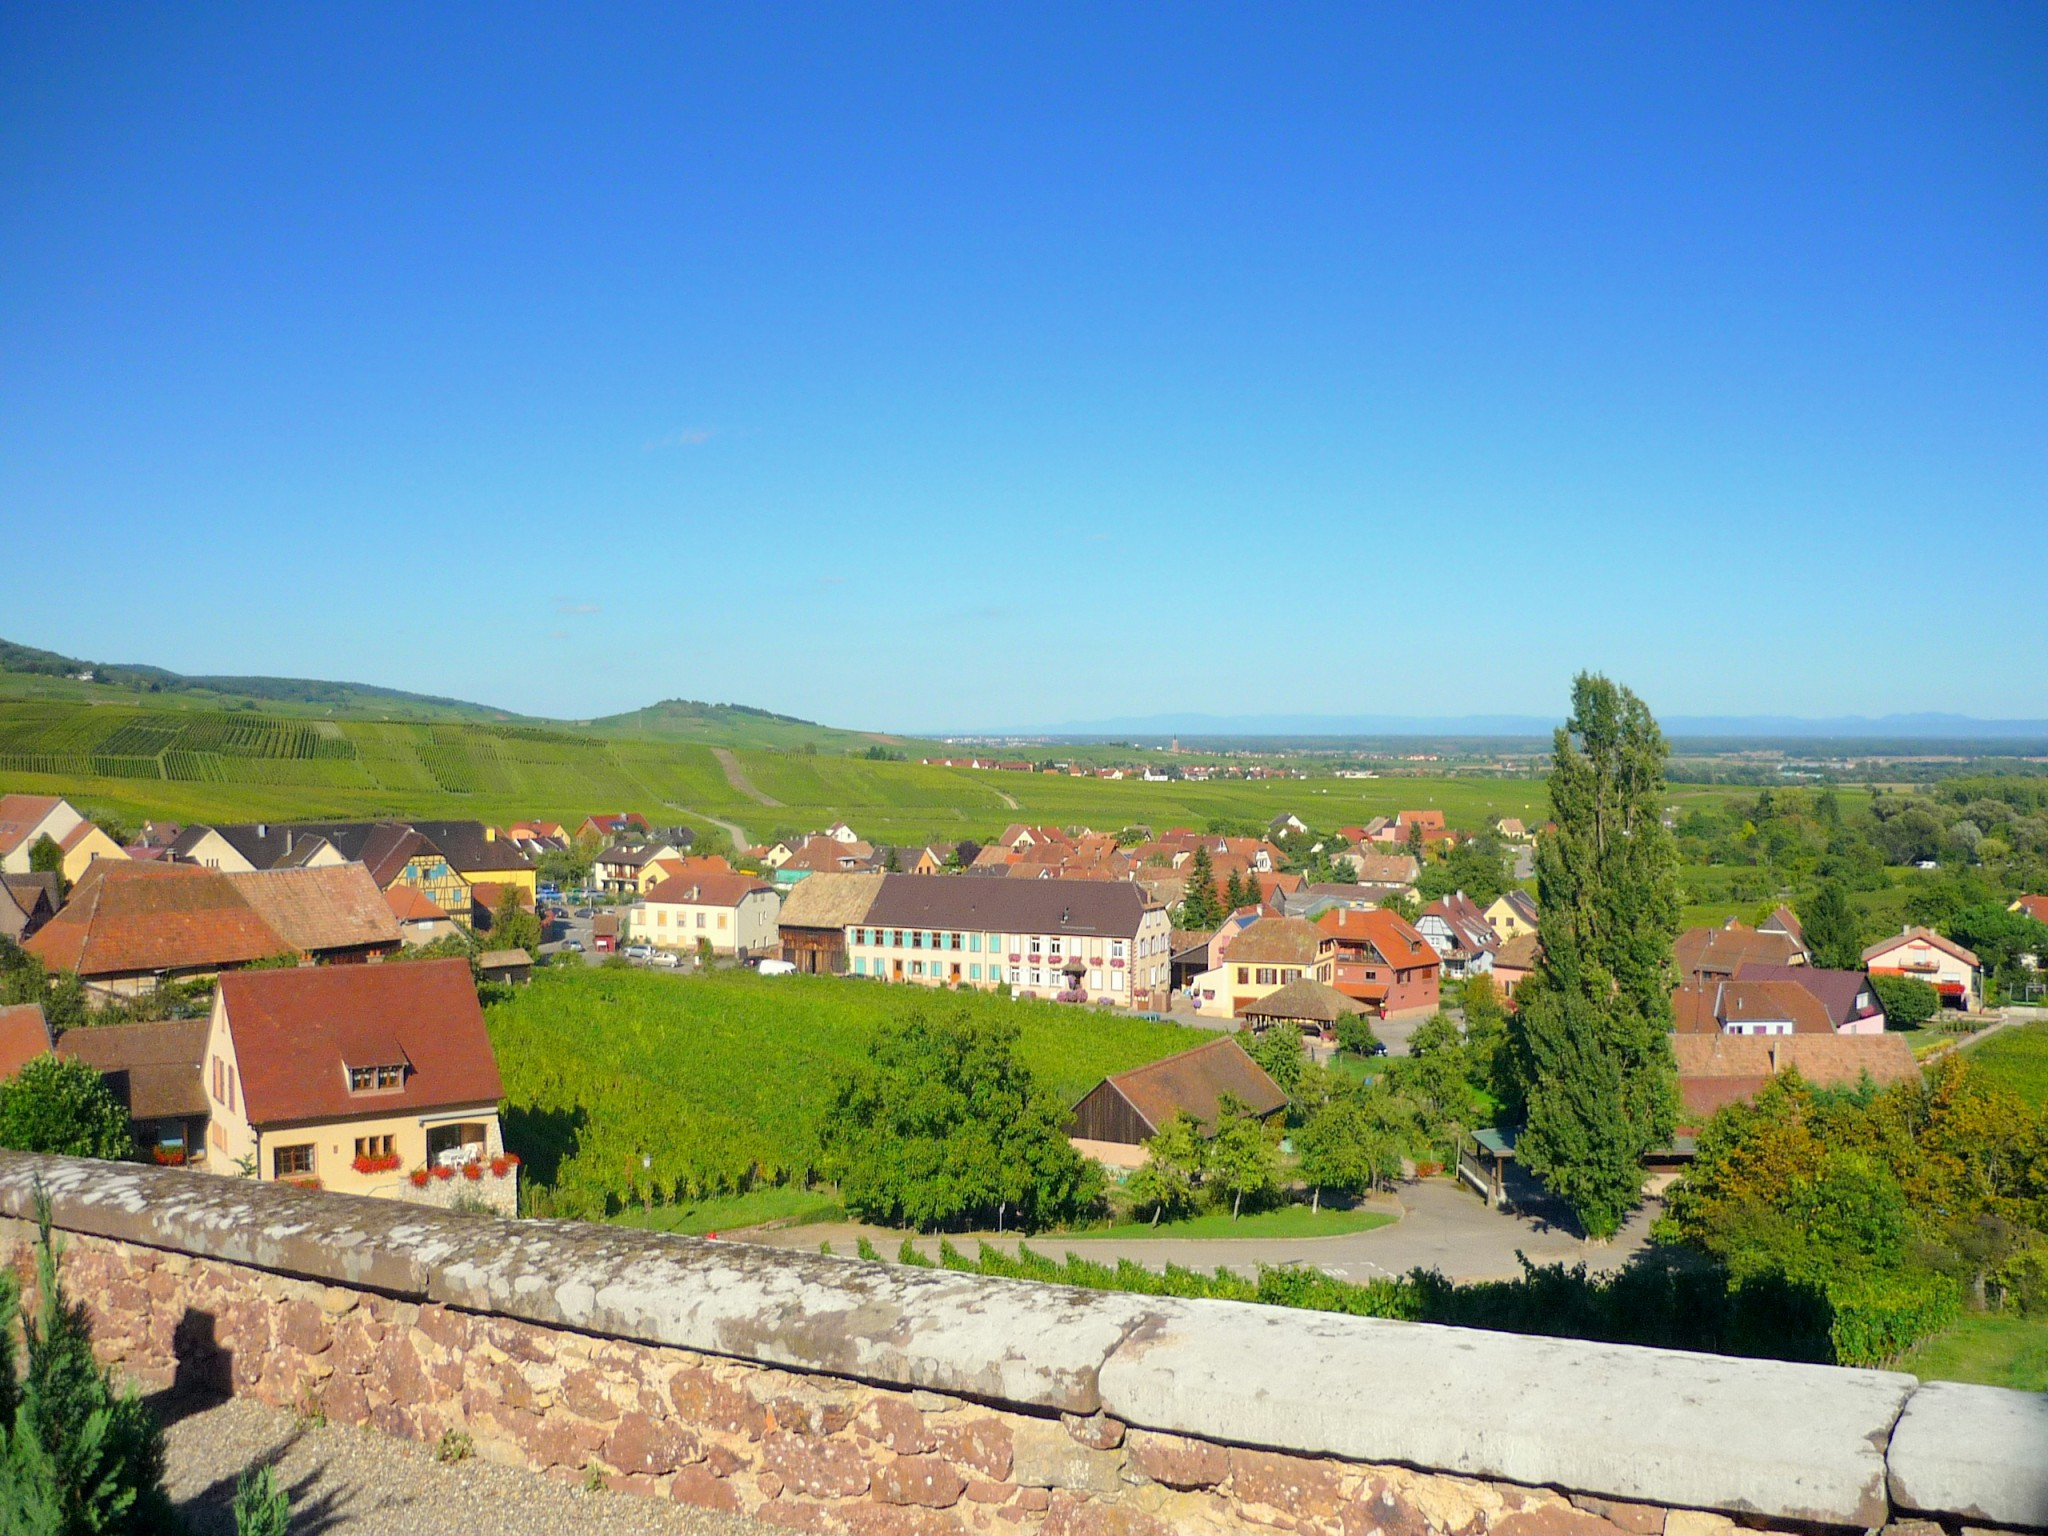 General view of Hunawihr, Alsace © French Moments